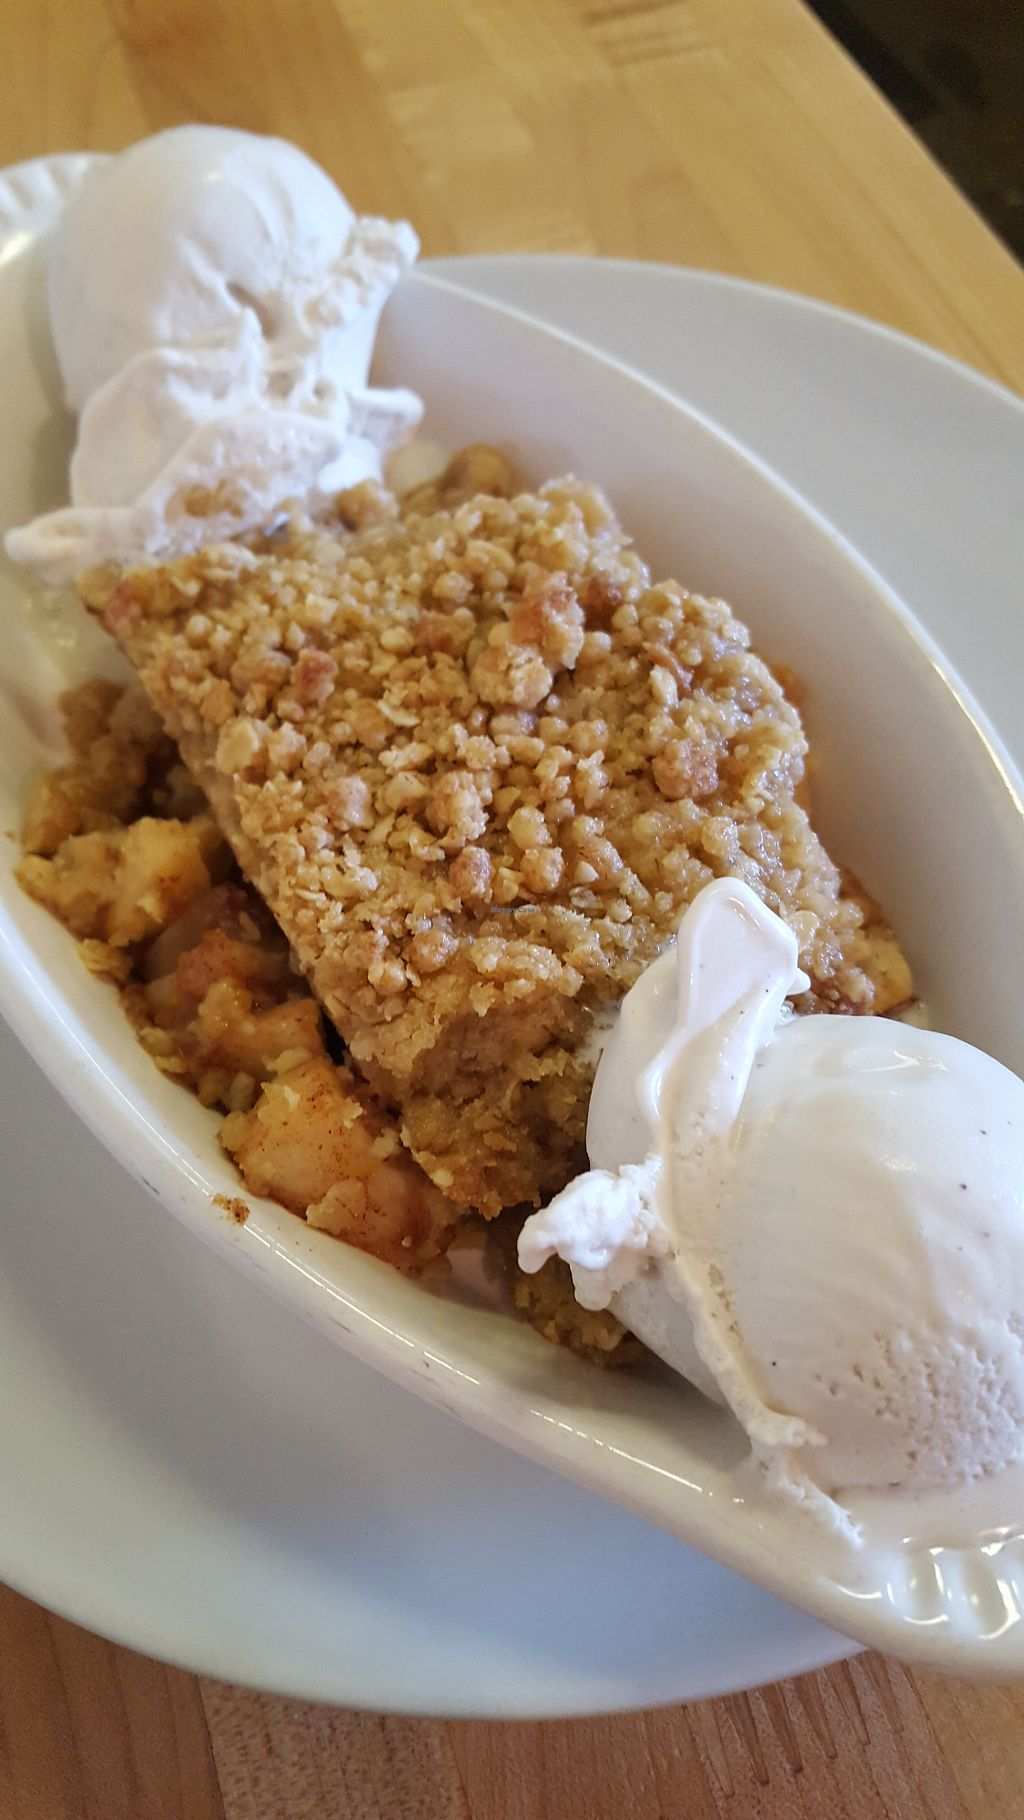 """Photo of Slice of Life  by <a href=""""/members/profile/VeganScientist"""">VeganScientist</a> <br/>Warm pear apple crisp with coconut ice cream <br/> April 22, 2018  - <a href='/contact/abuse/image/1583/389204'>Report</a>"""